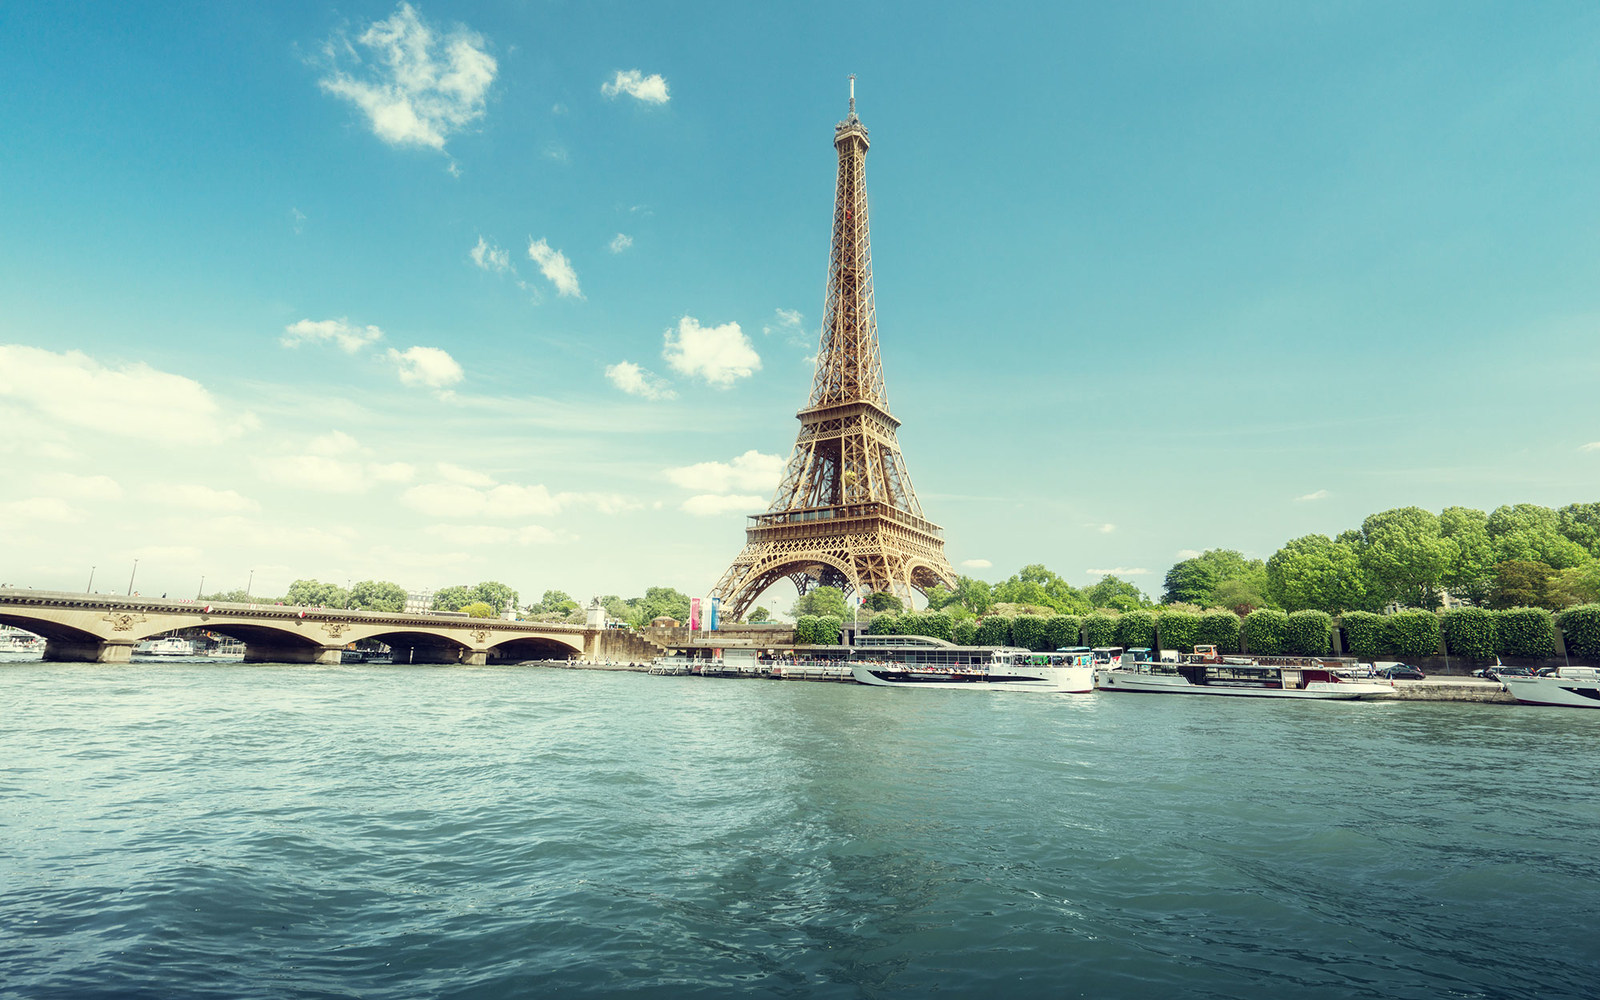 The Eiffel Tower from the Seine River